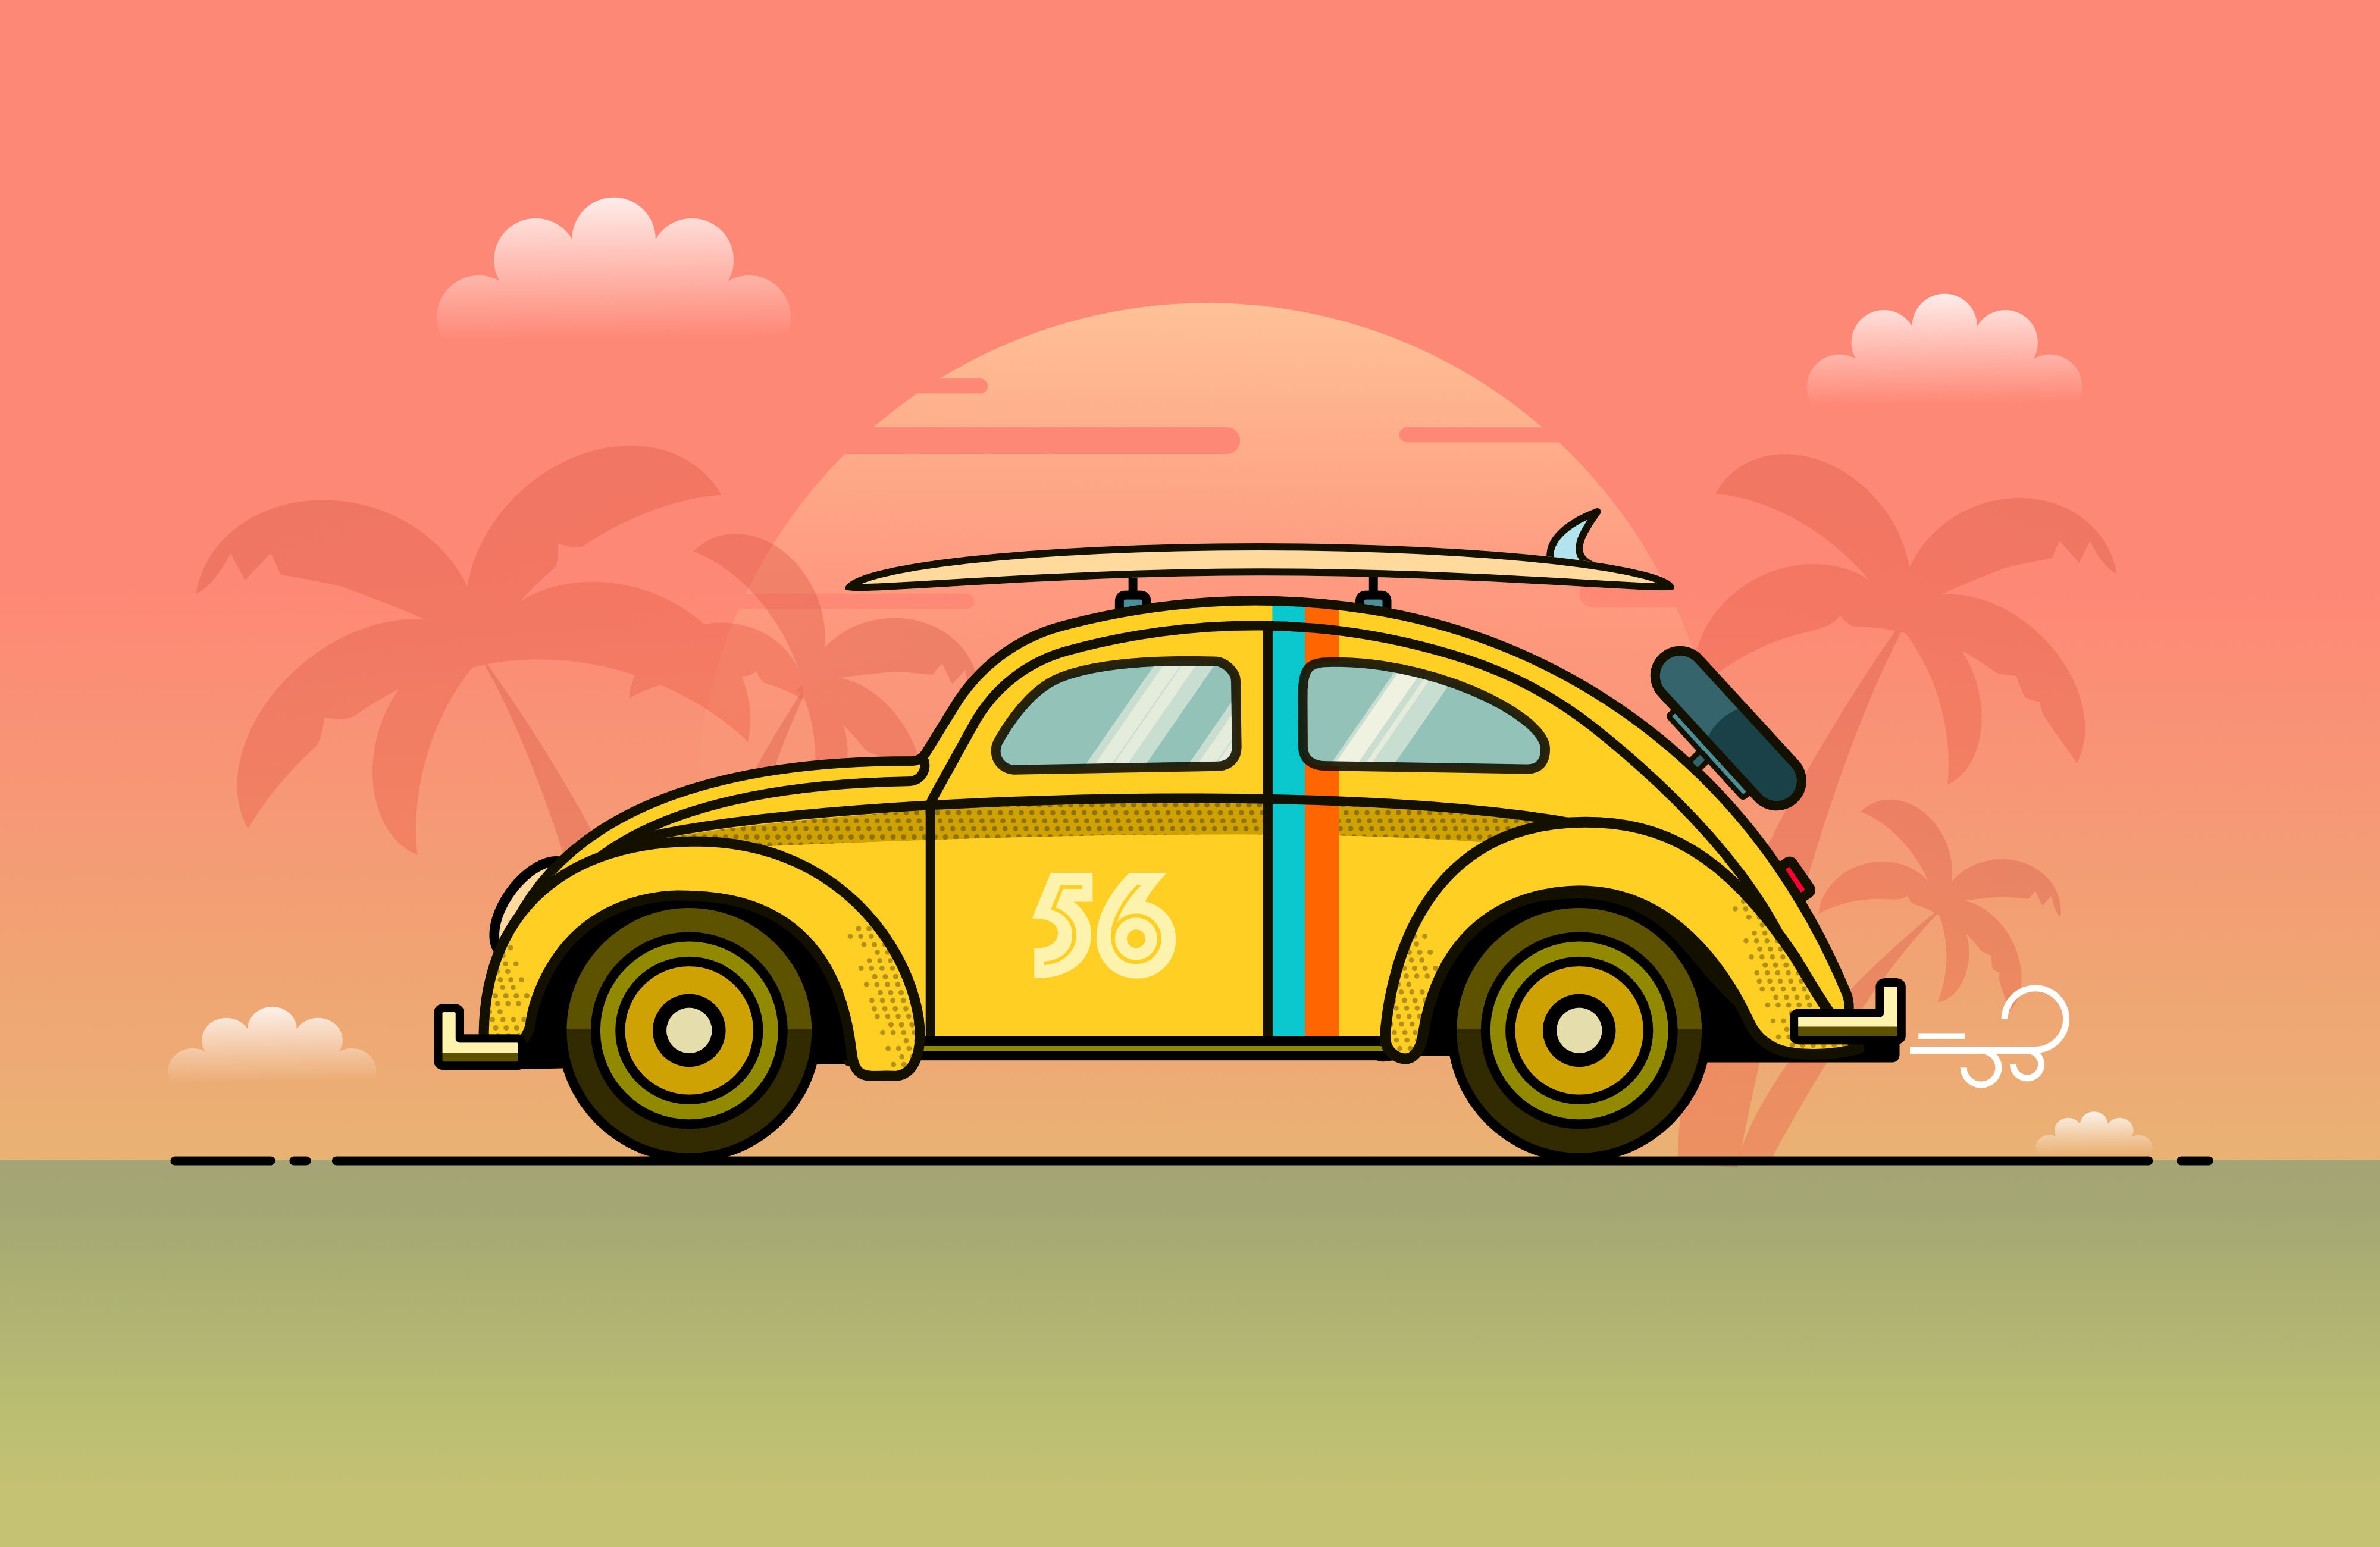 Cartoon of car and palm trees